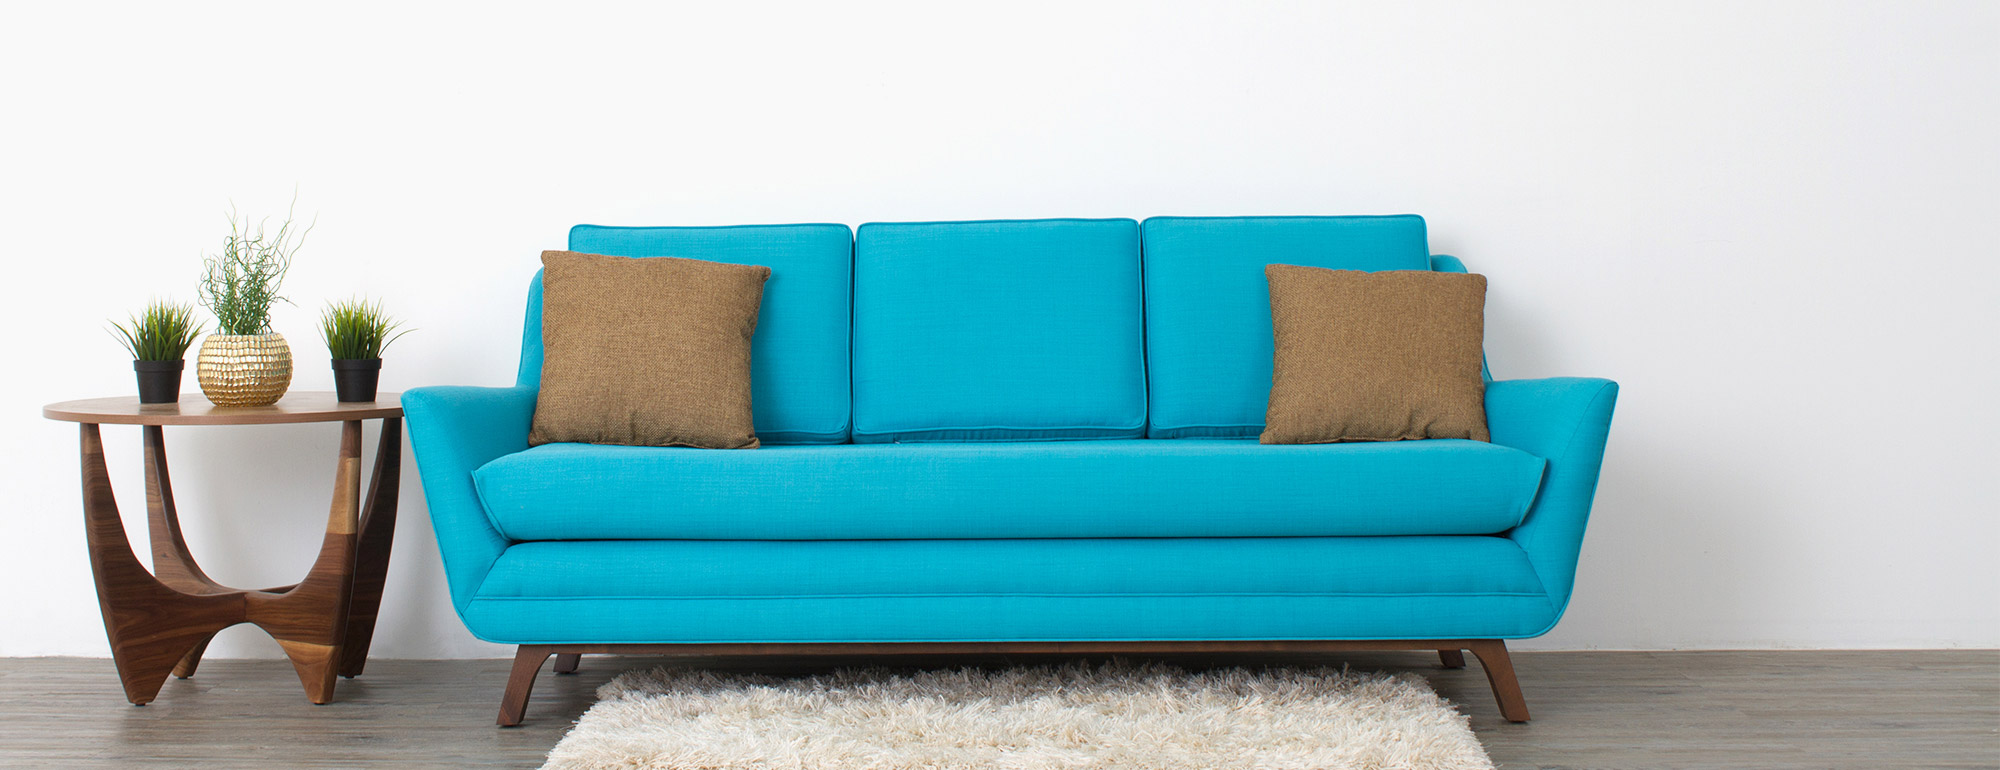 hero-ryder-sofa-6